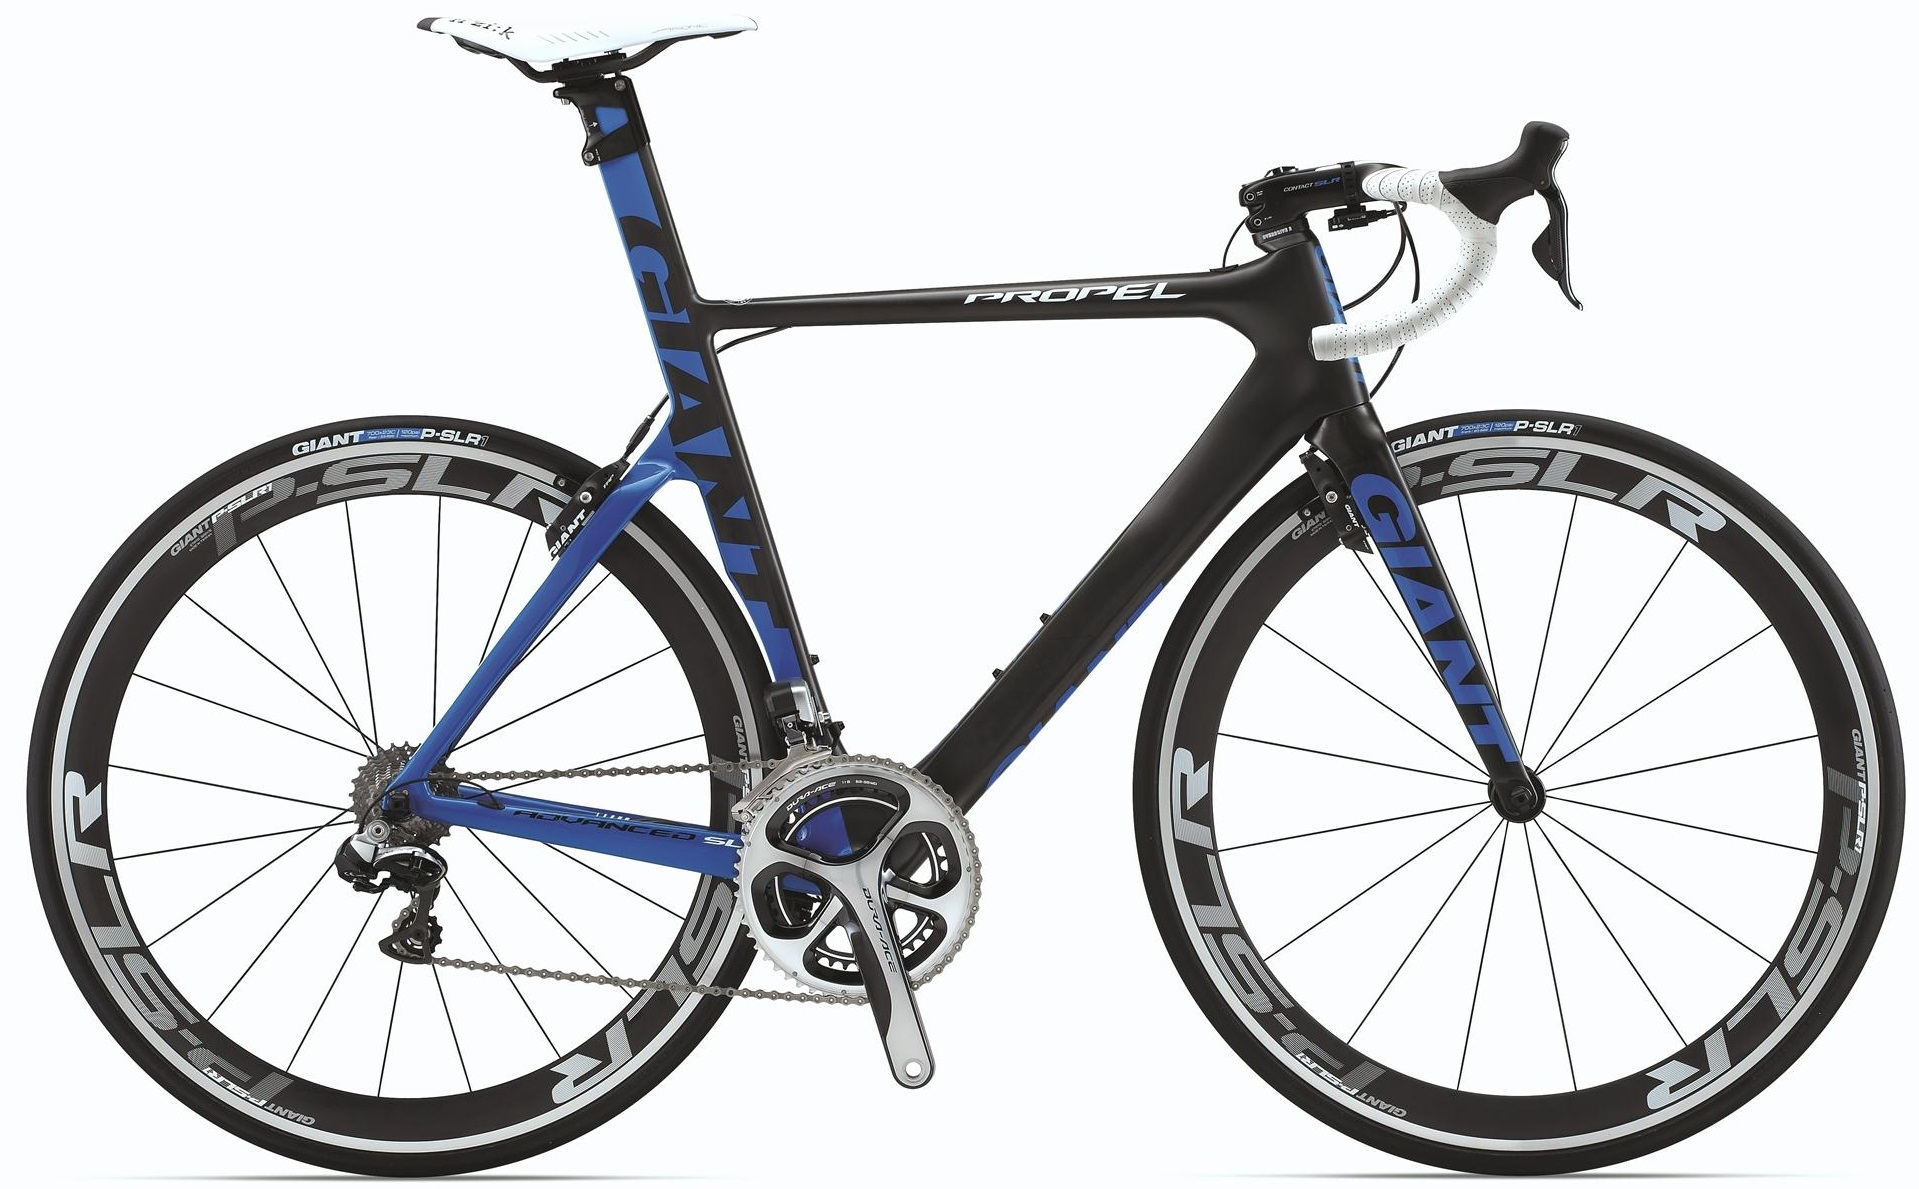 Giant Propel Advanced 2013neuroticarnutzspecialized_venge_pro_sram_Red, black blue 2013